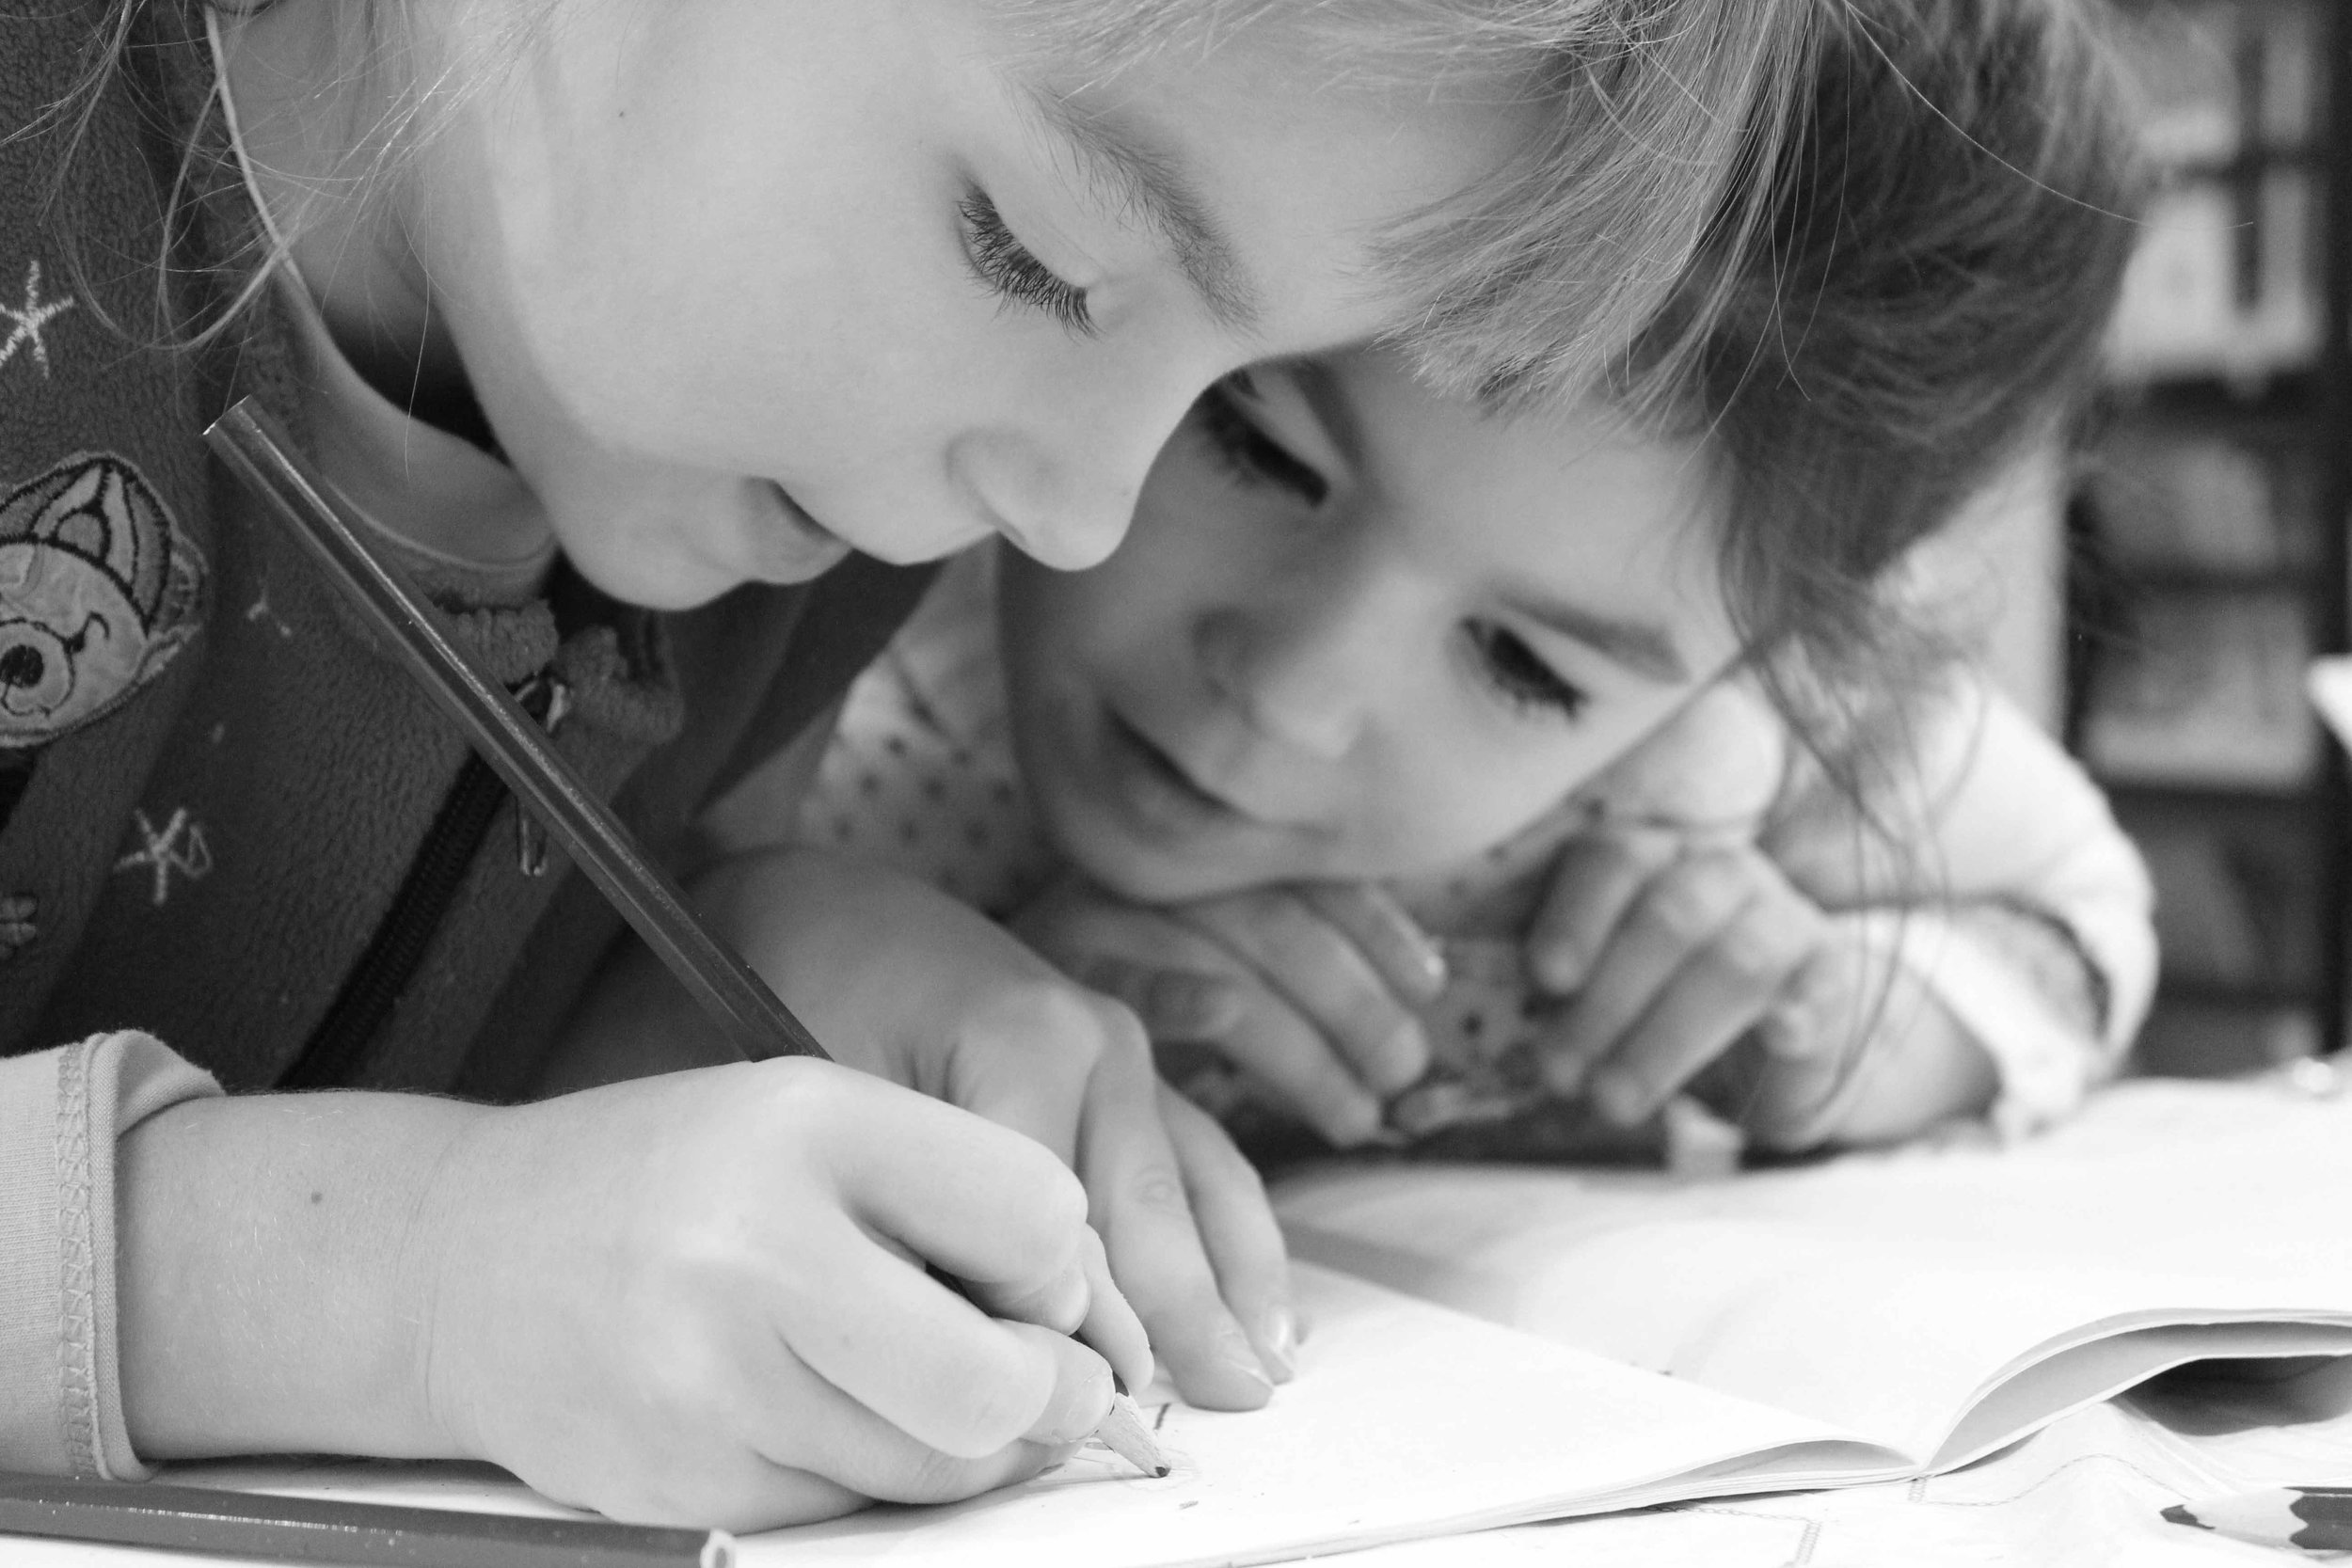 children-cute-drawing-159823-bw.jpg